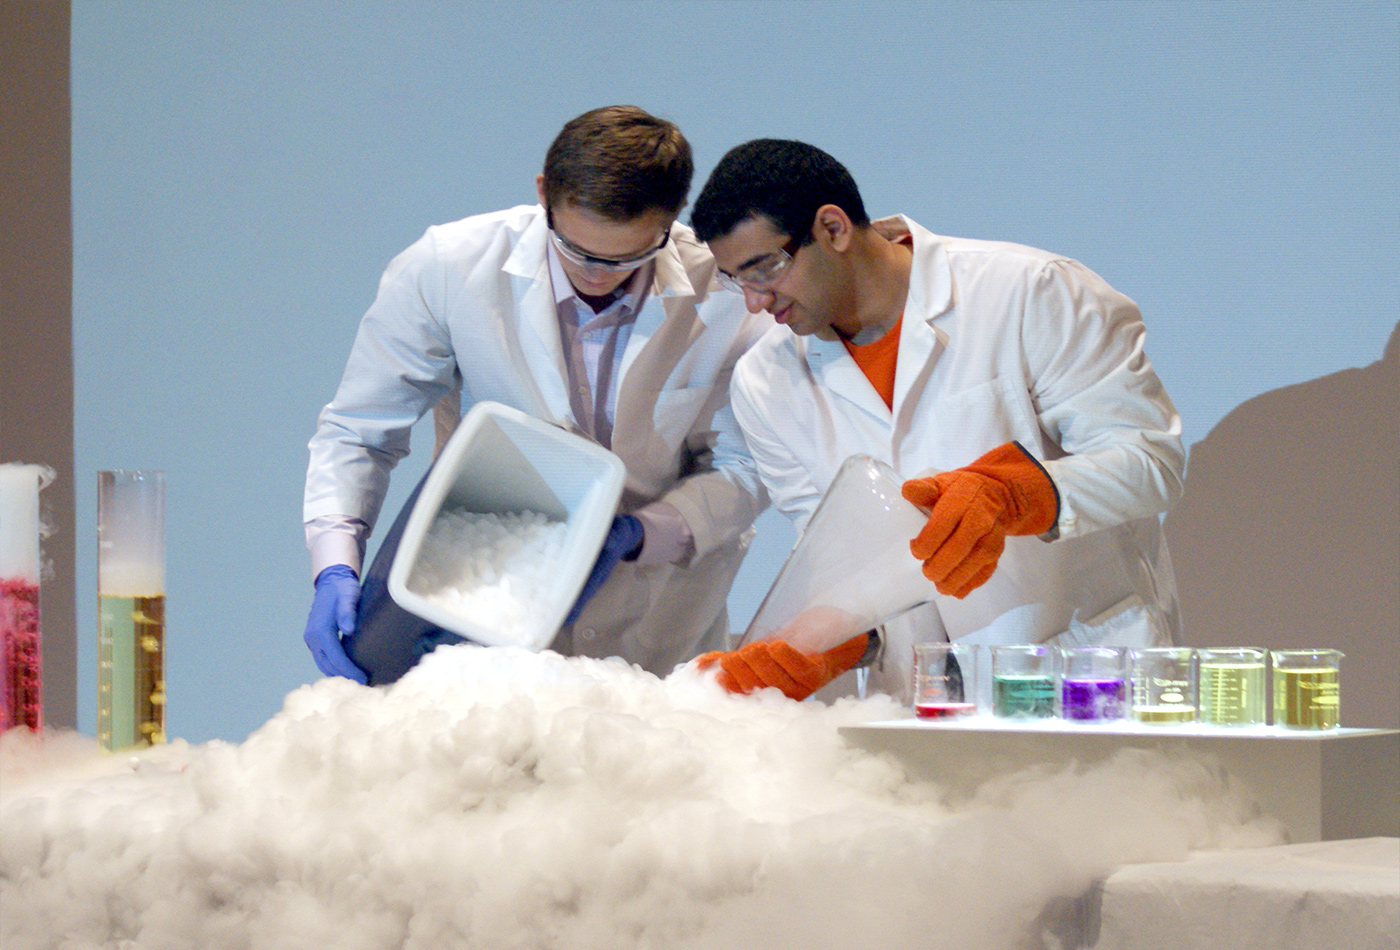 Two students pour out a container of smokey dry ice